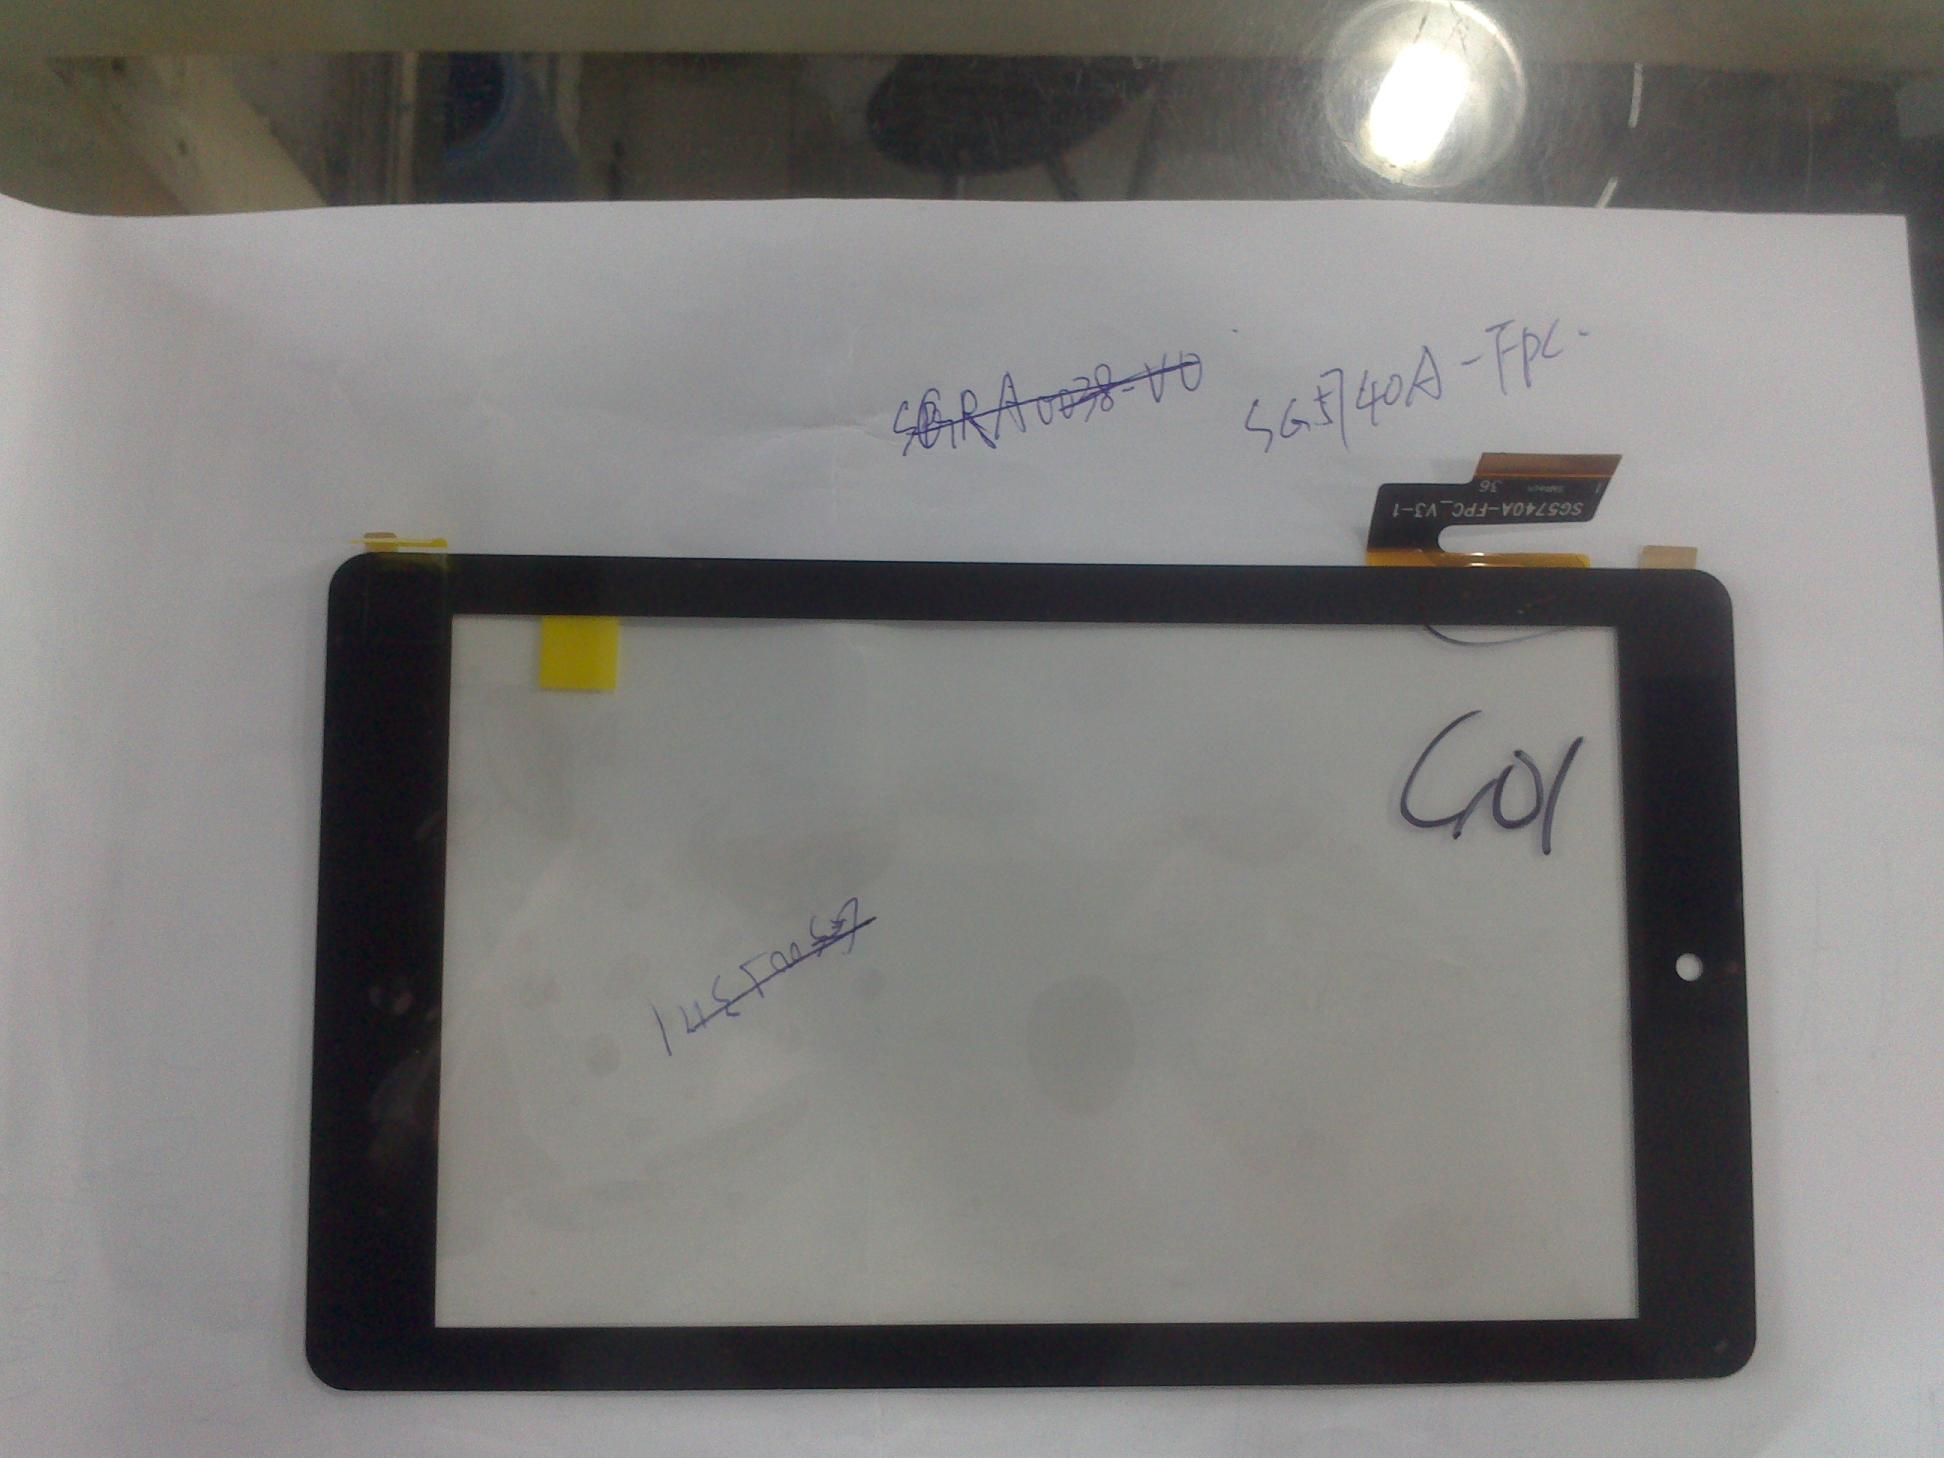 Запчасти для мобильных телефонов 7 inch new handwriting Tablet capacitive touch screen screen screen number is sg5740a/fpc_v3/1  SG5740A-FPC_V3-1 цена